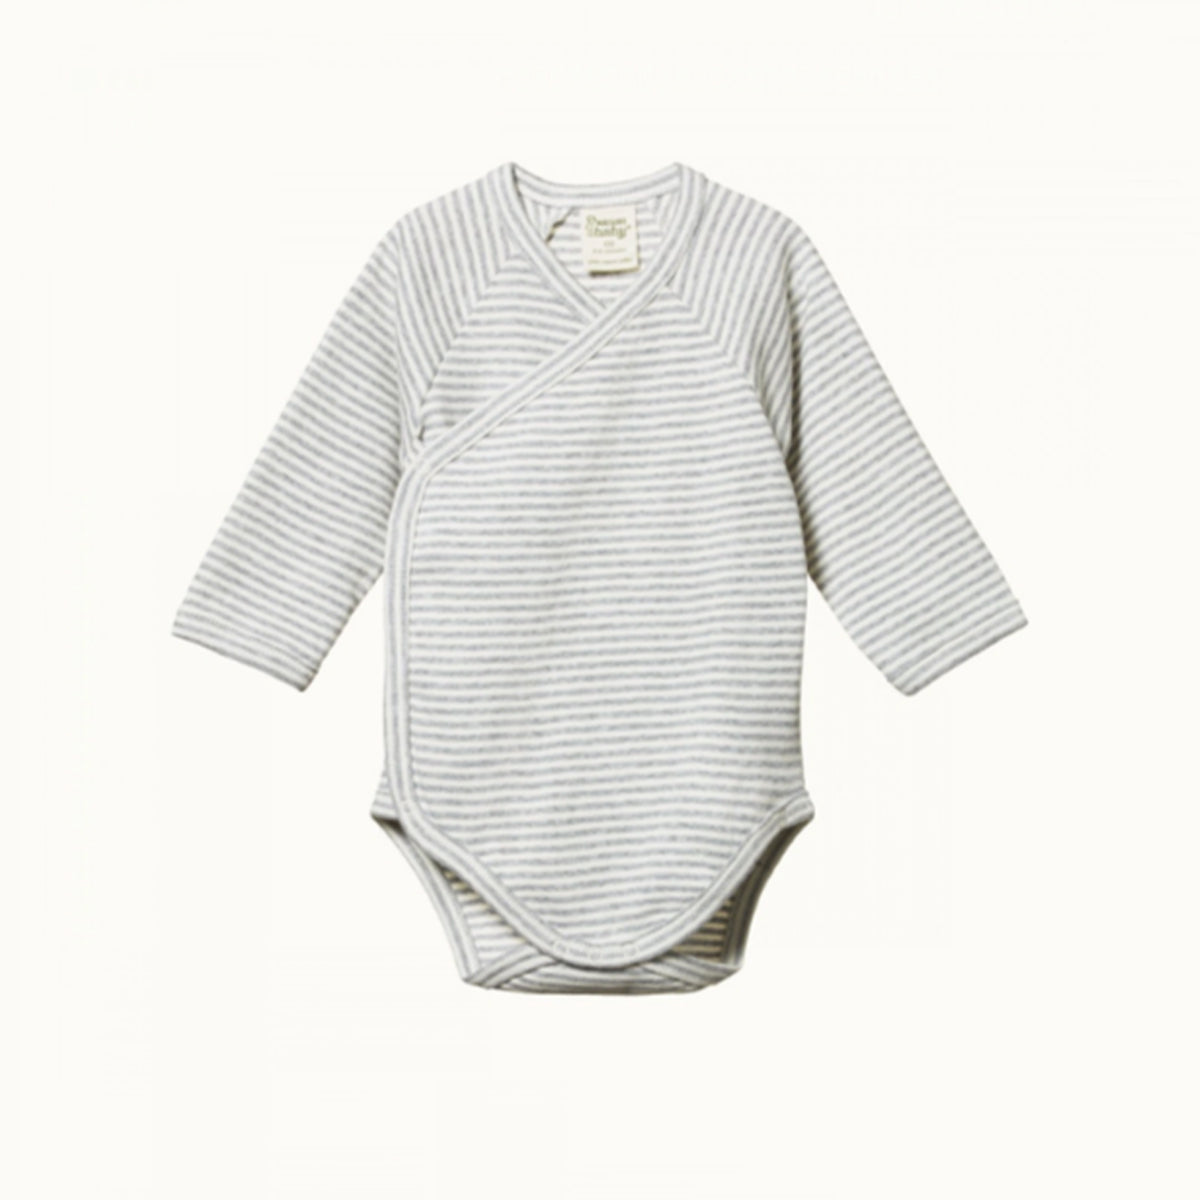 NATURE BABY  |  LONG-SLEEVE KIMONO BODYSUIT  |  GREY MARLE STRIPE